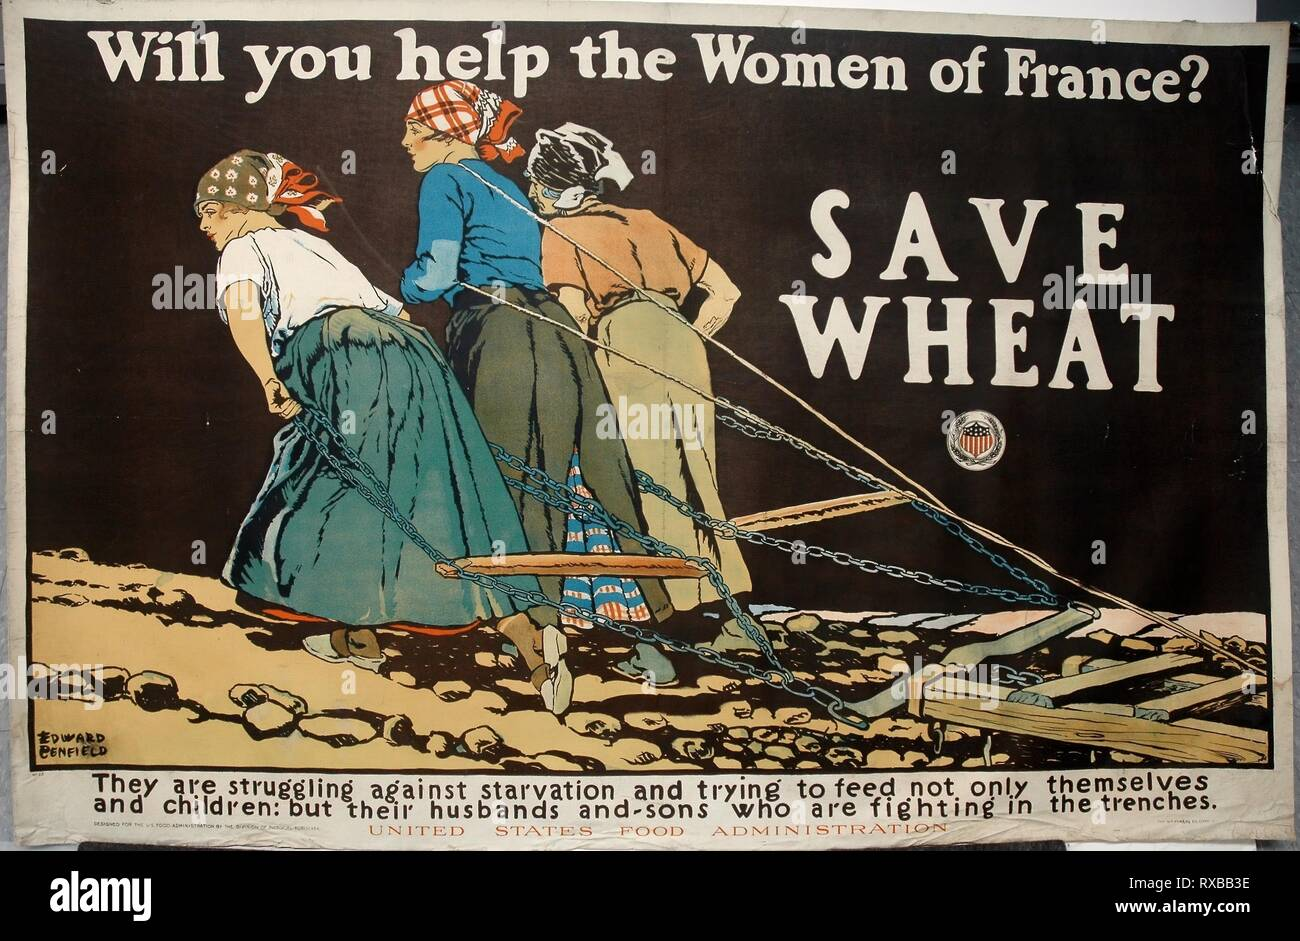 Will You Help the Women of France?. Edward Penfield (American, 1866-1925); printed by W. F. Powers Company Lithographers; published by United States Food Administration. Date: 1917. Dimensions: 925 x 1420 mm. Color lithograph on cream wove paper, laid down on linen. Origin: United States. Museum: The Chicago Art Institute. - Stock Image